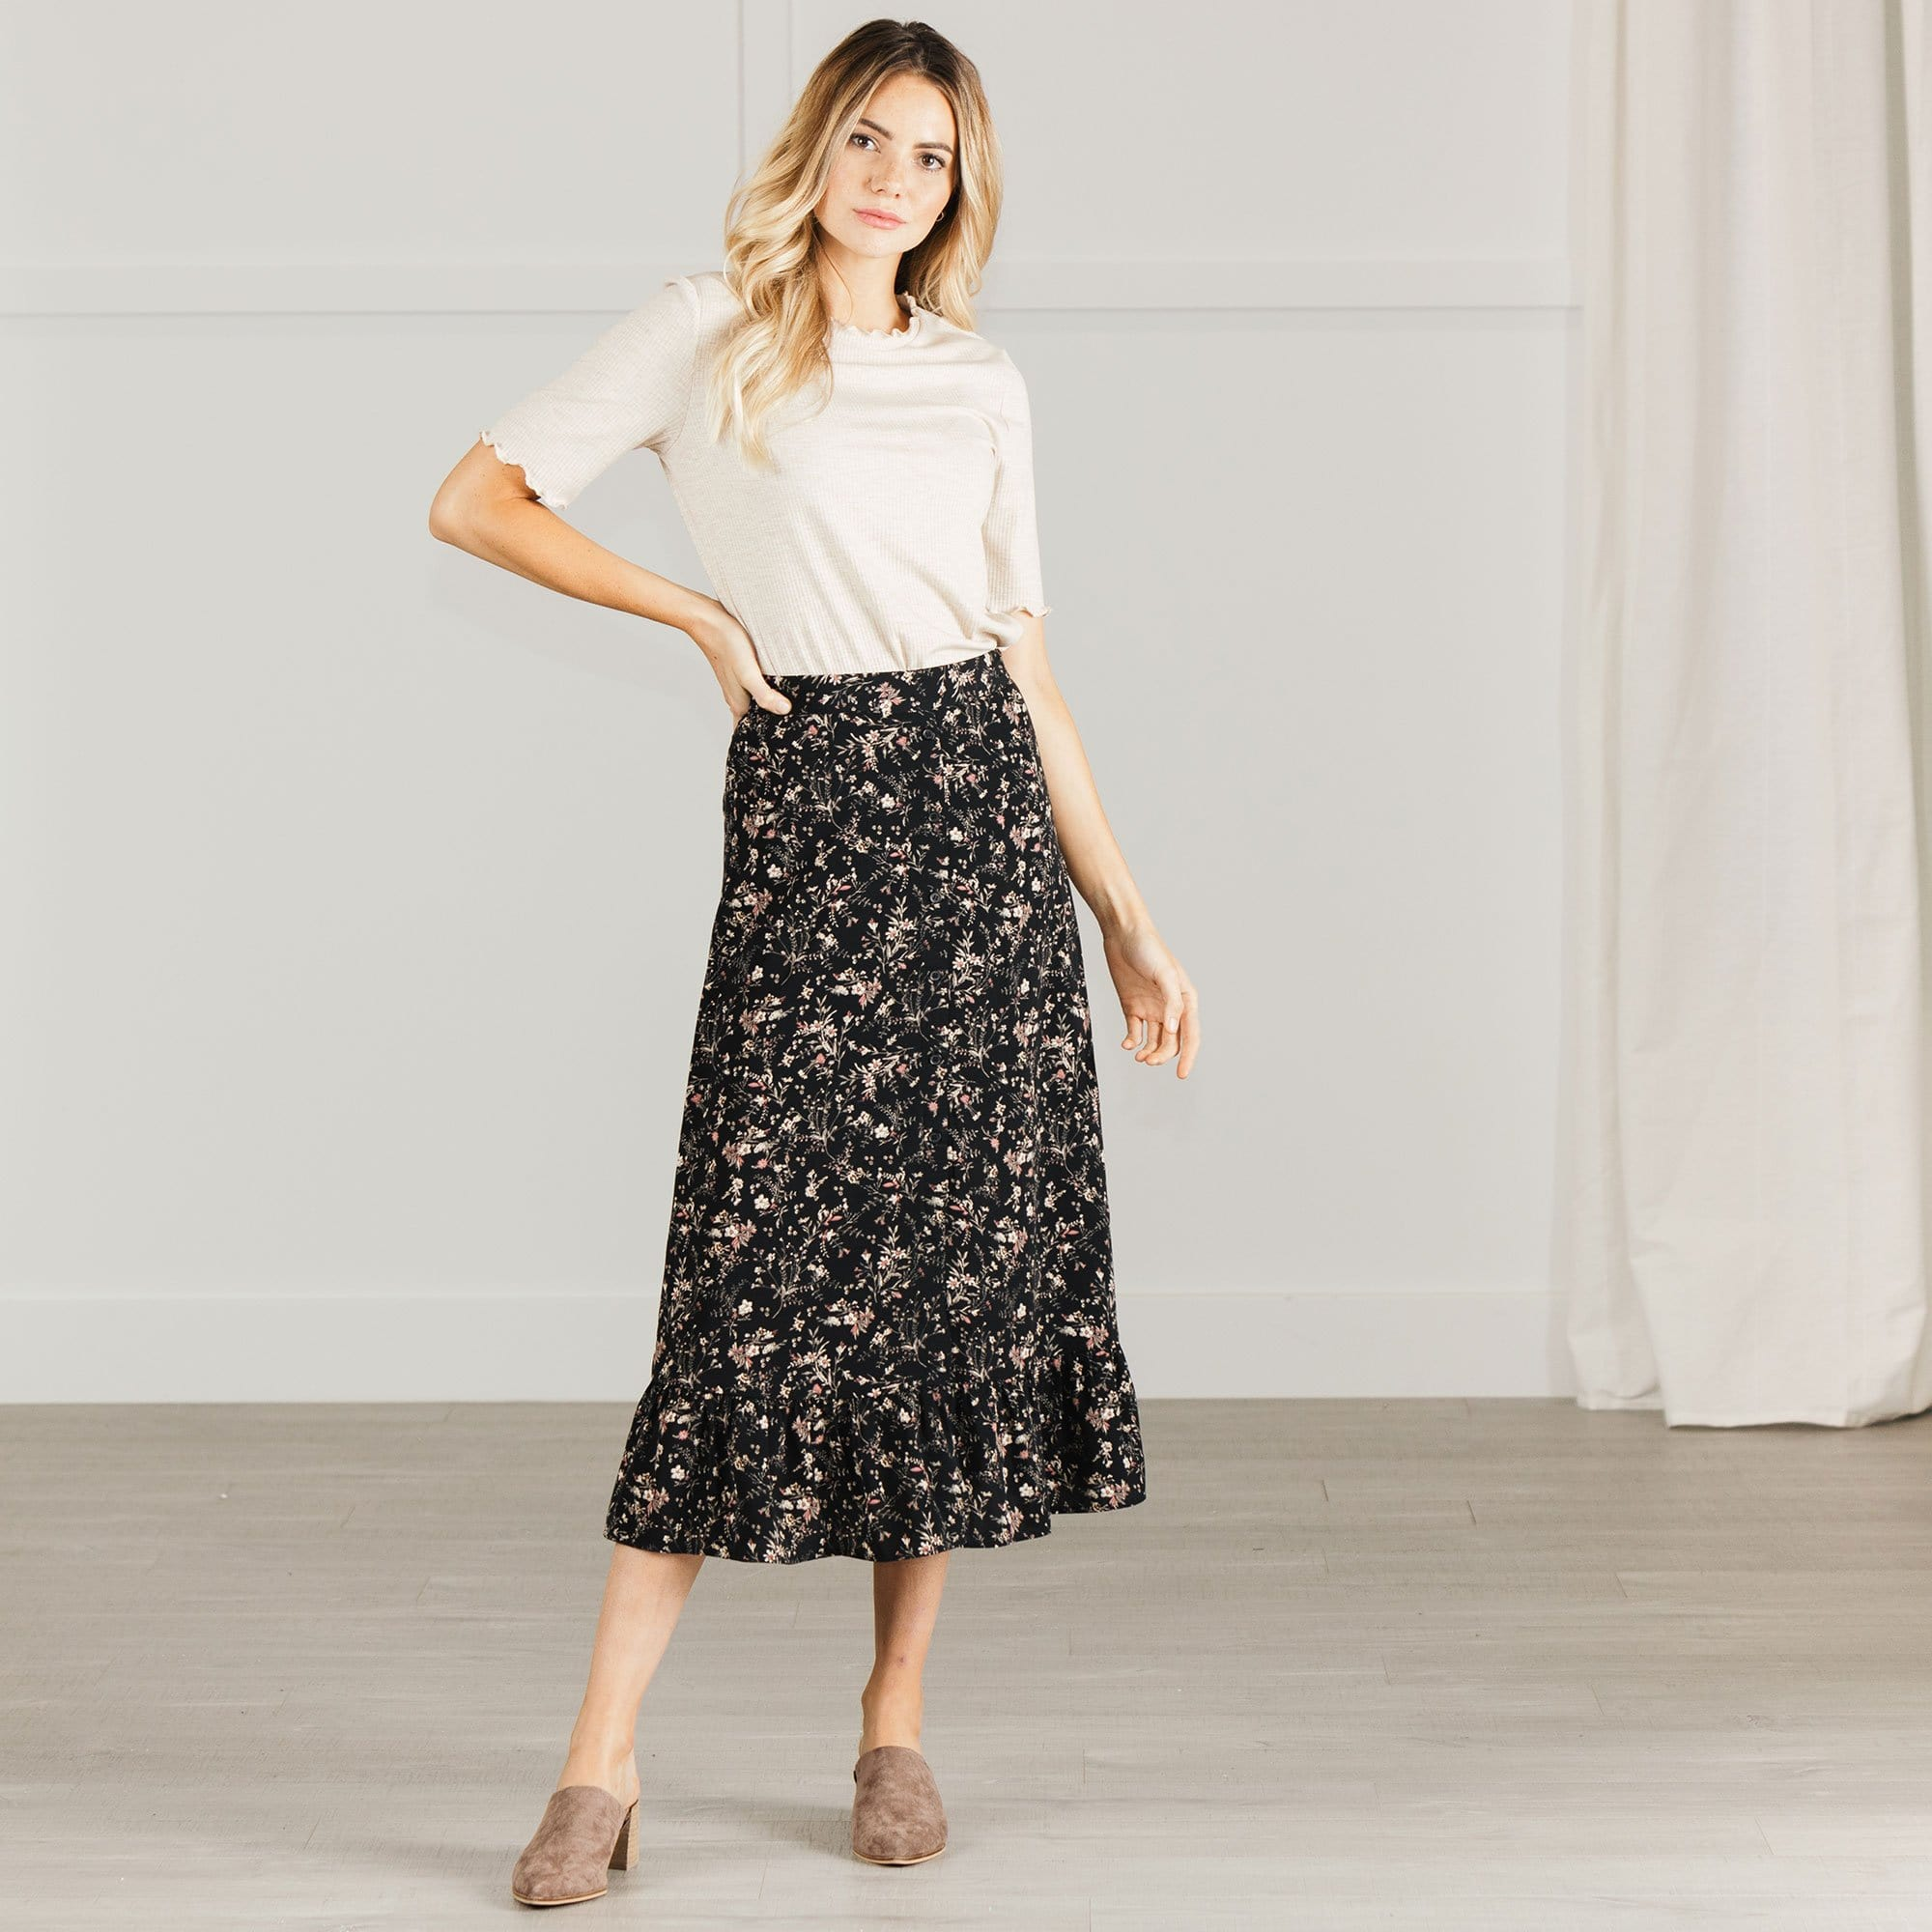 Riley Skirt in Floral